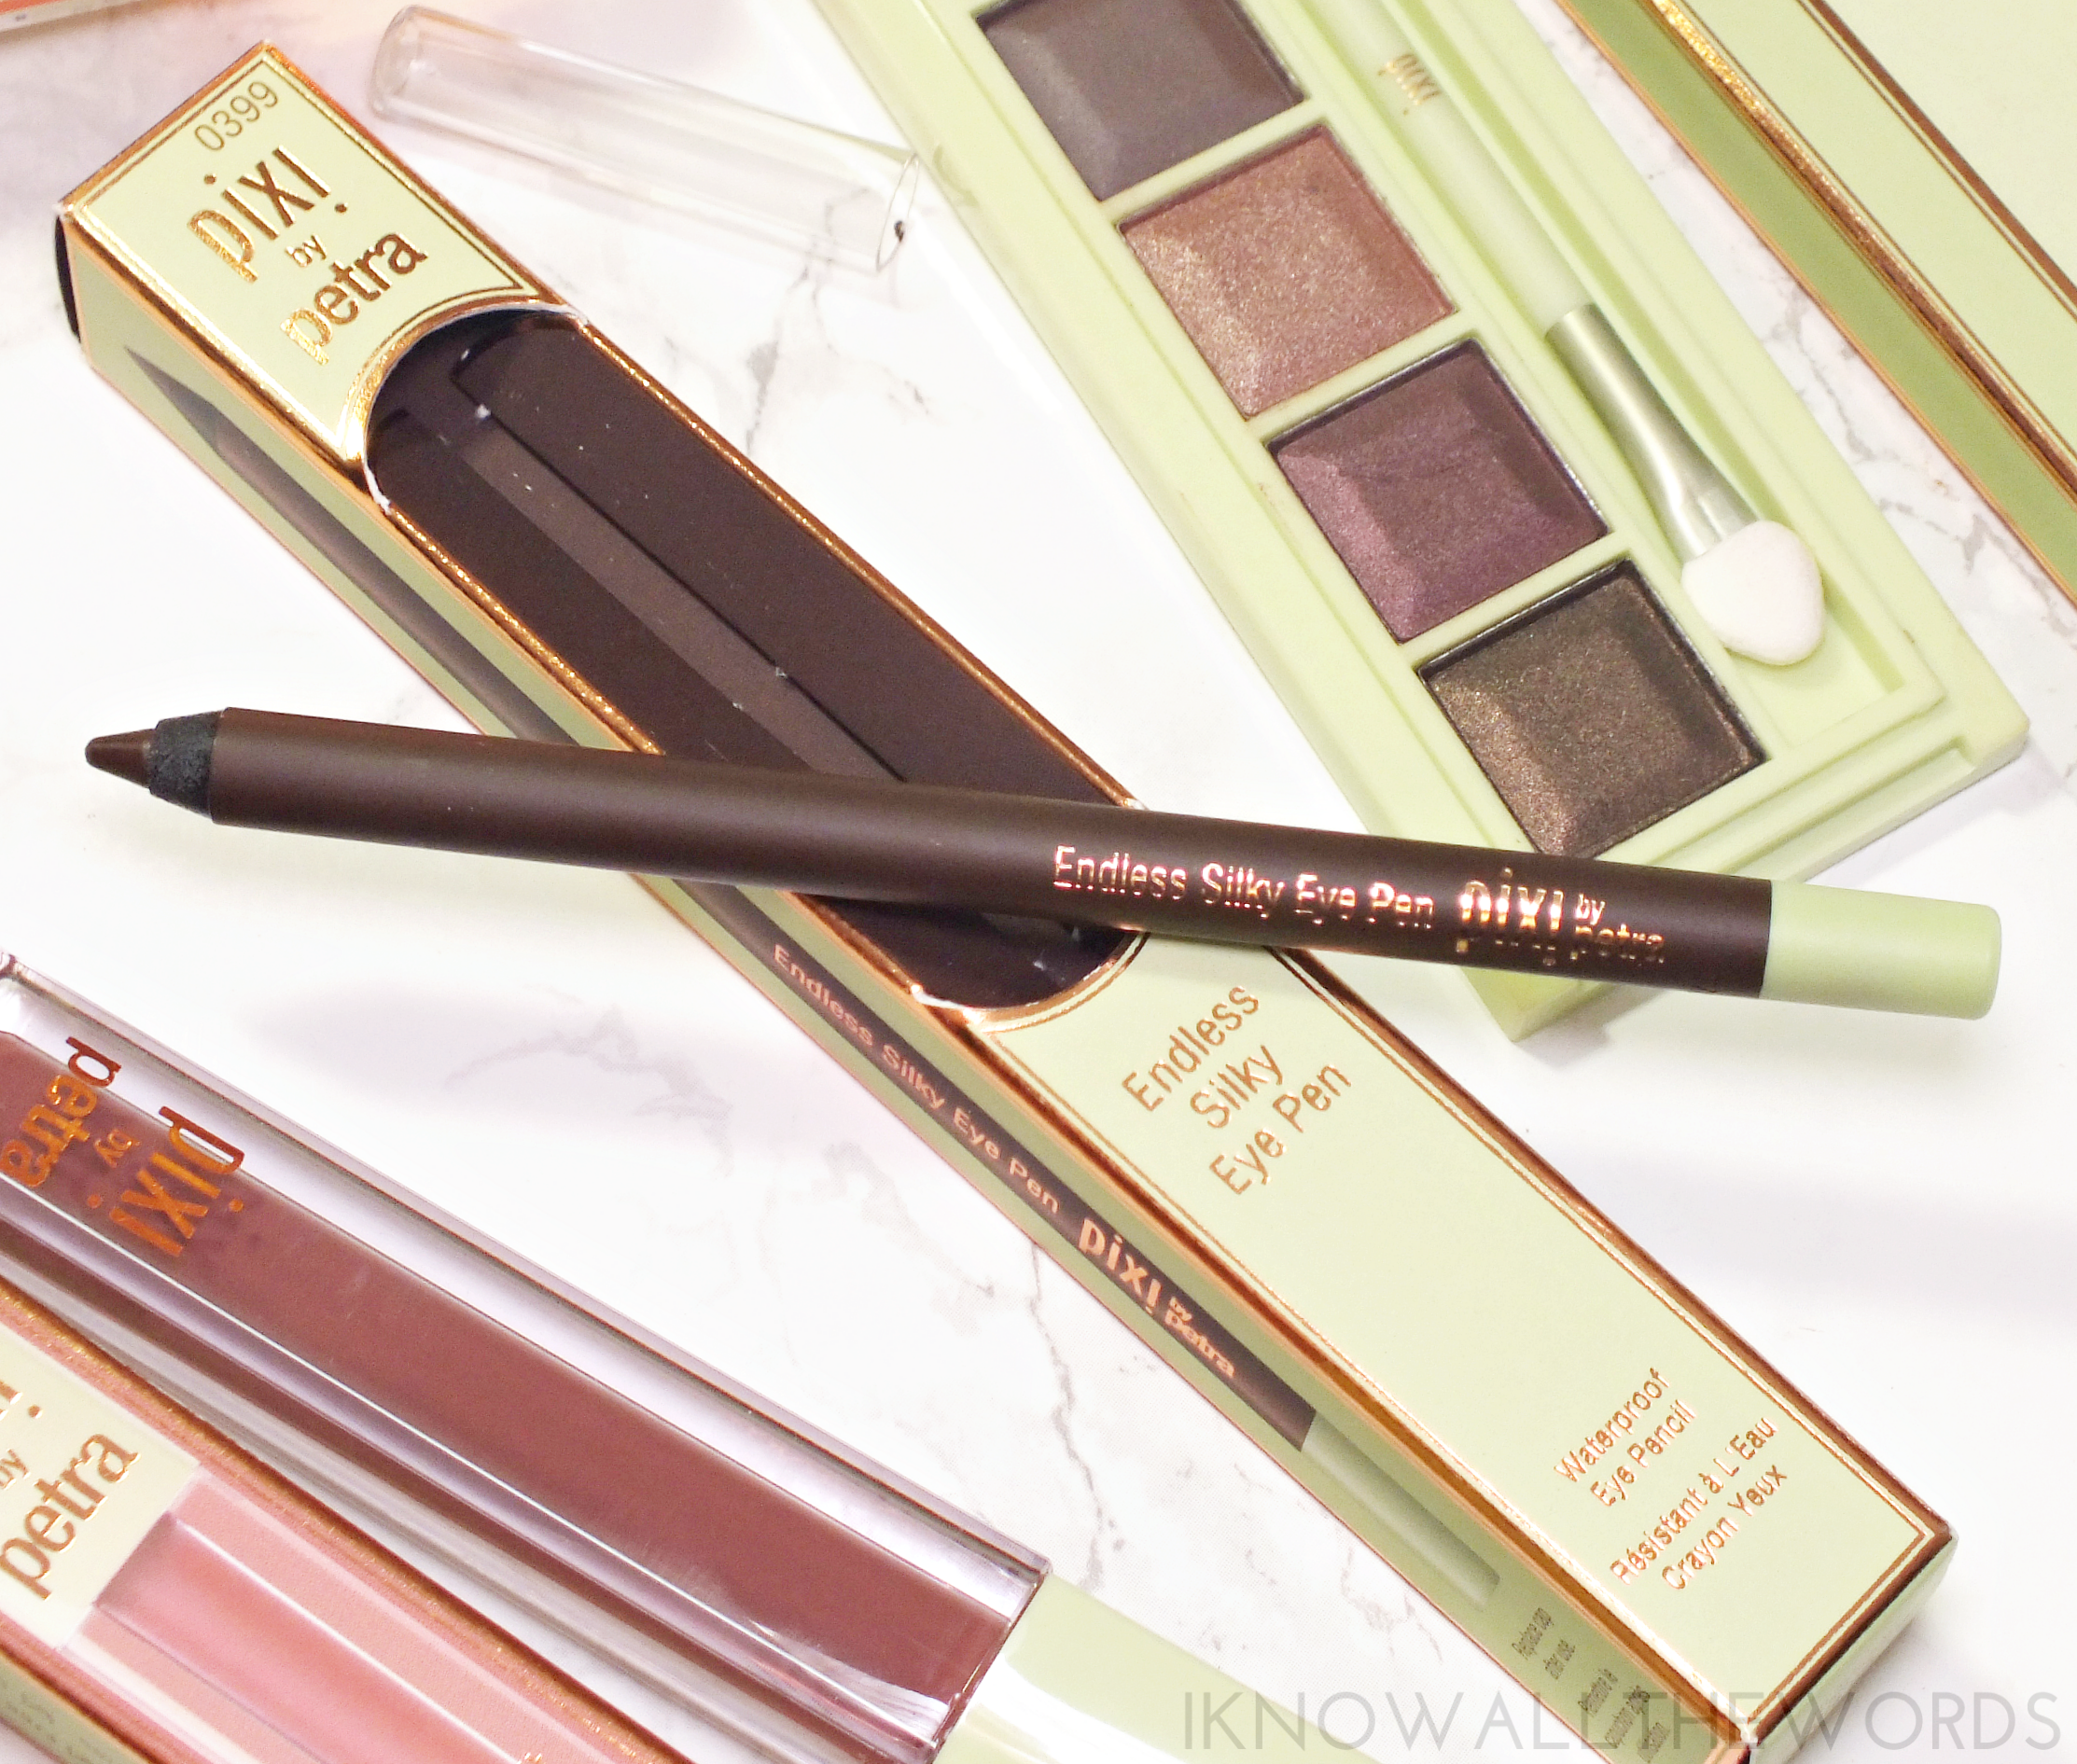 pixi black cocoa endless silky eye pen